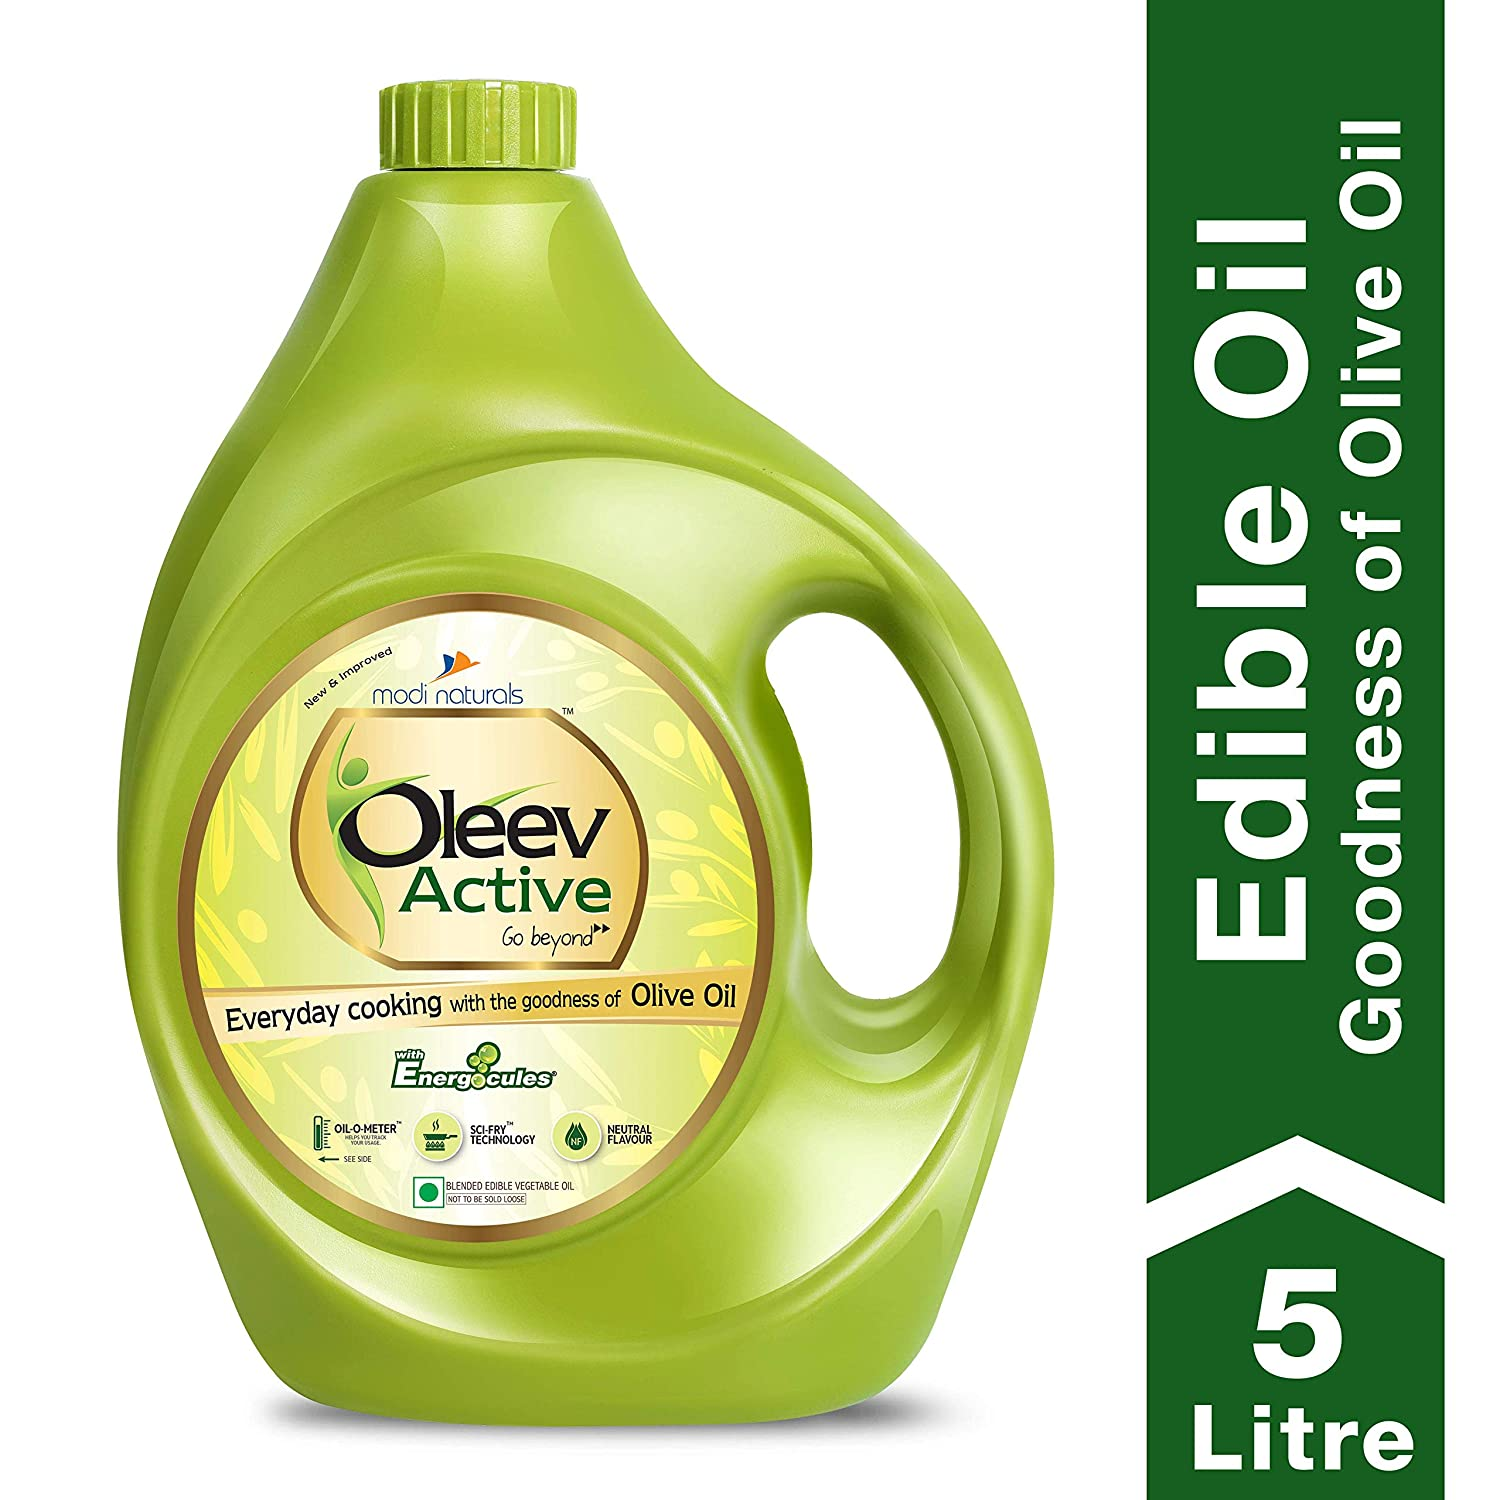 Oleev Active Oil Jar, 5L